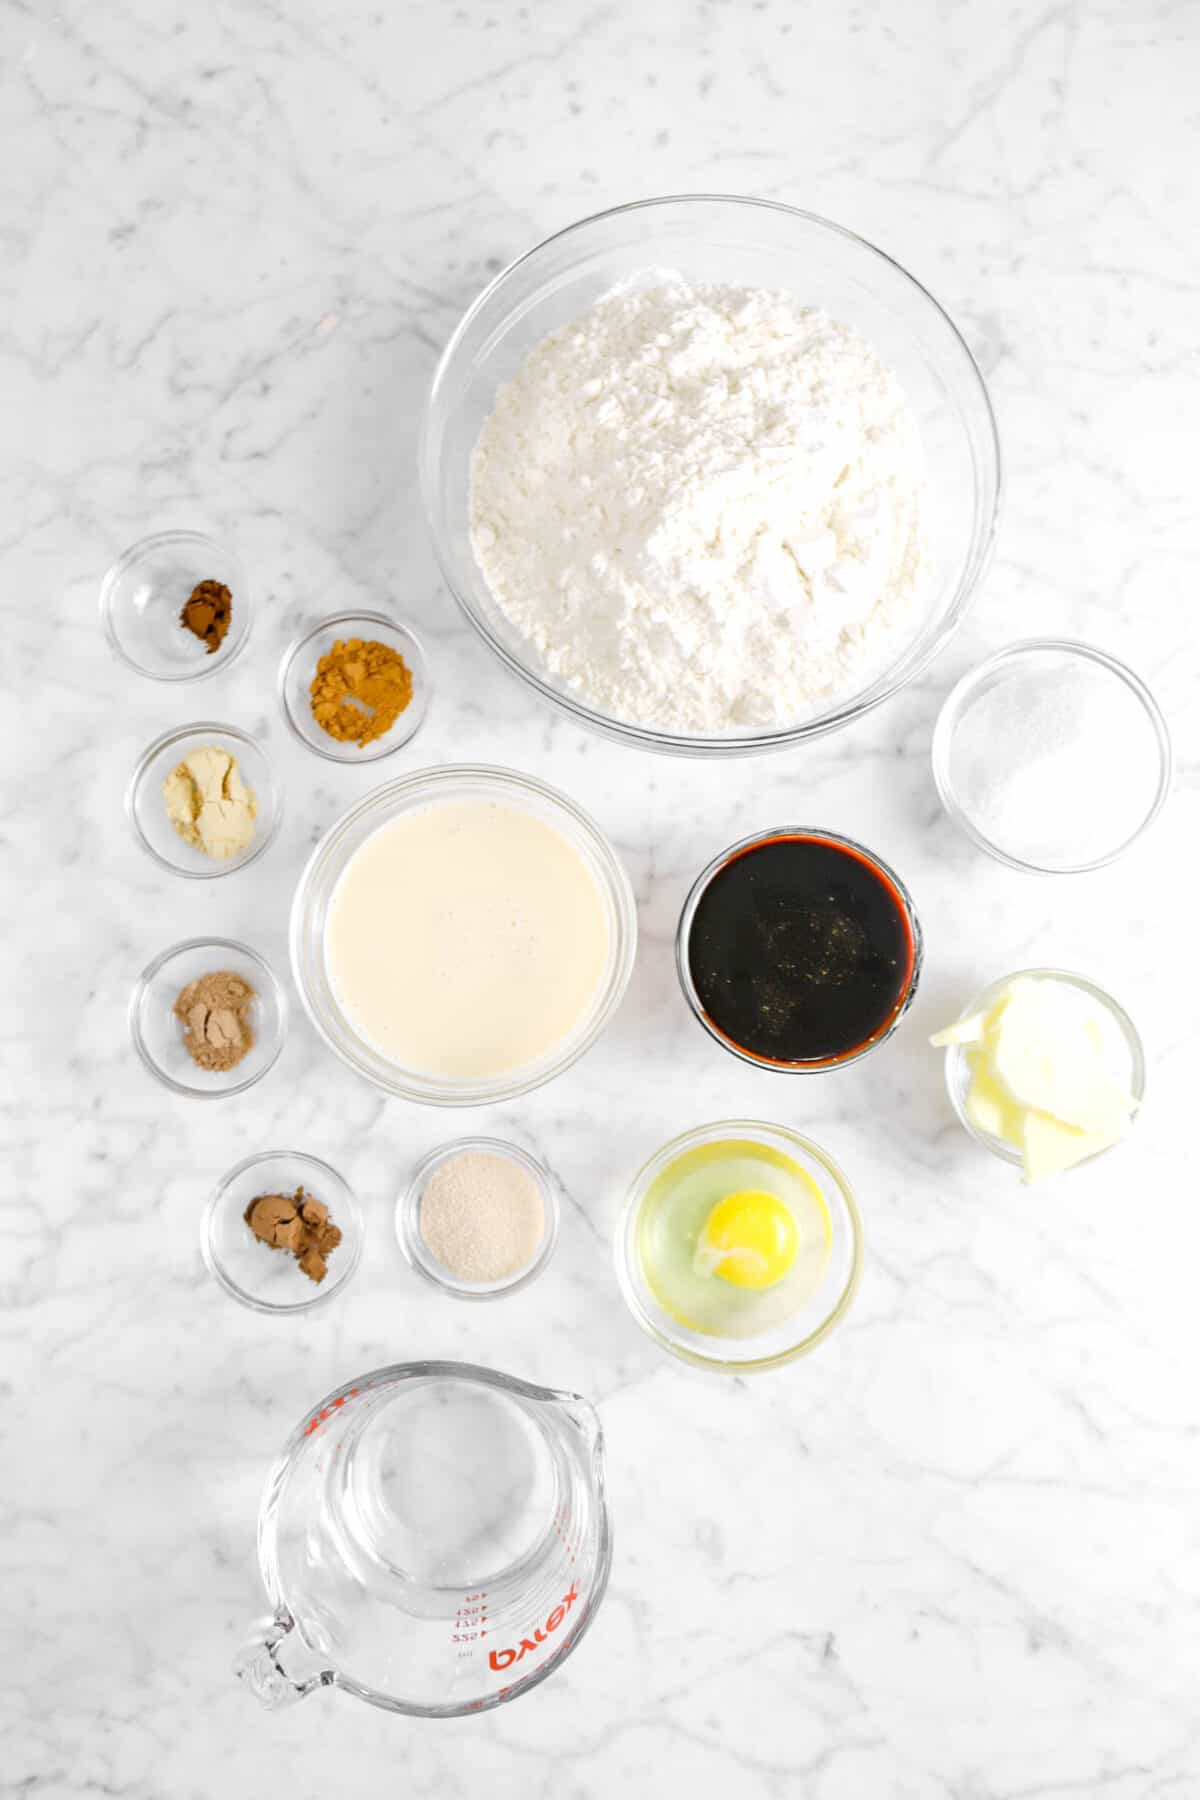 flour, spices, evaporated milk, sugar, molasses, butter, yeast, egg, and water on marble counter